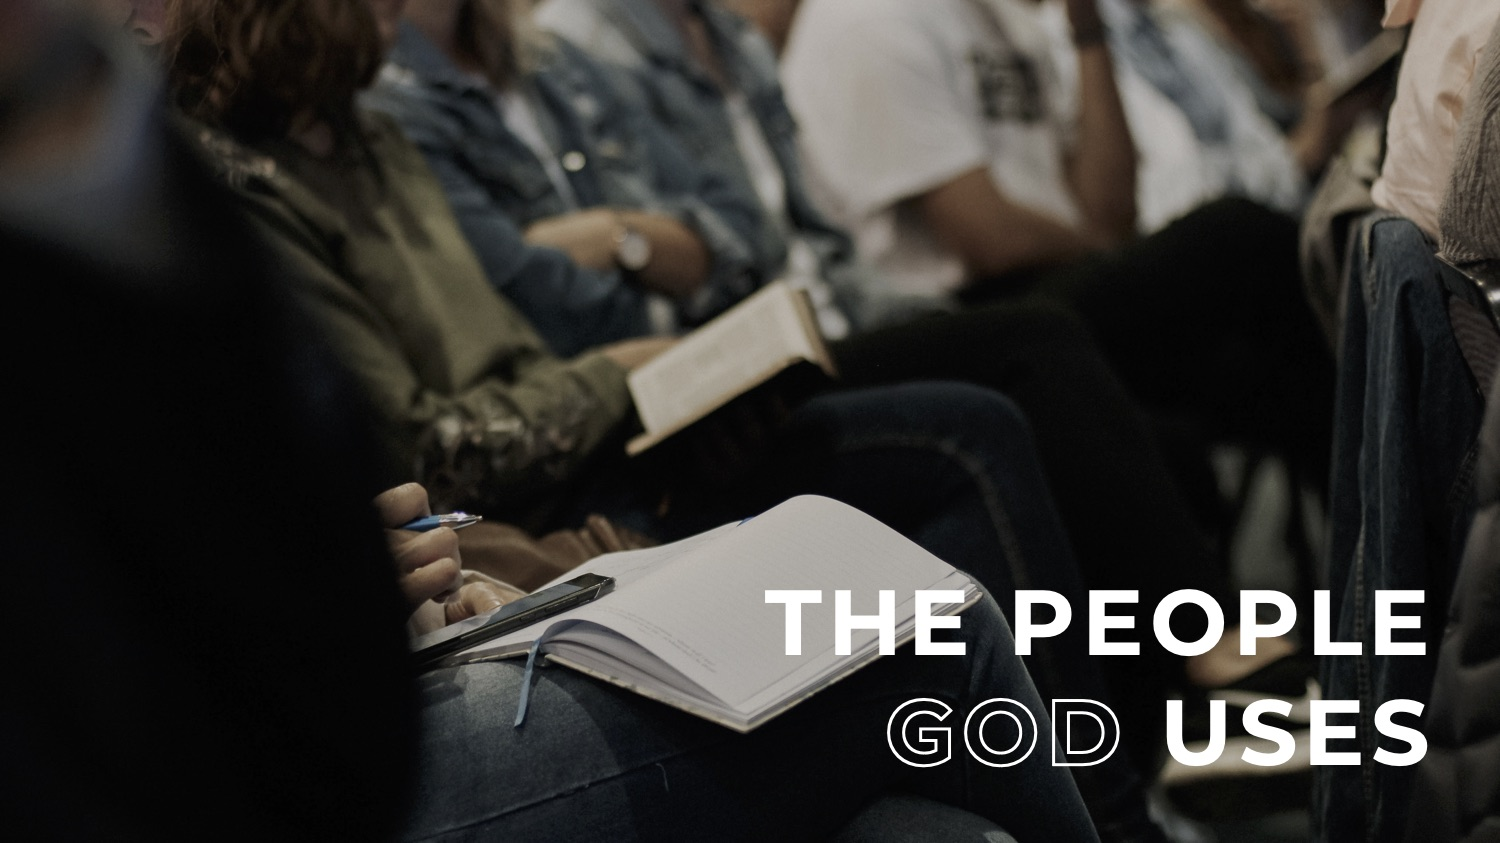 7.12.20 The People God Uses